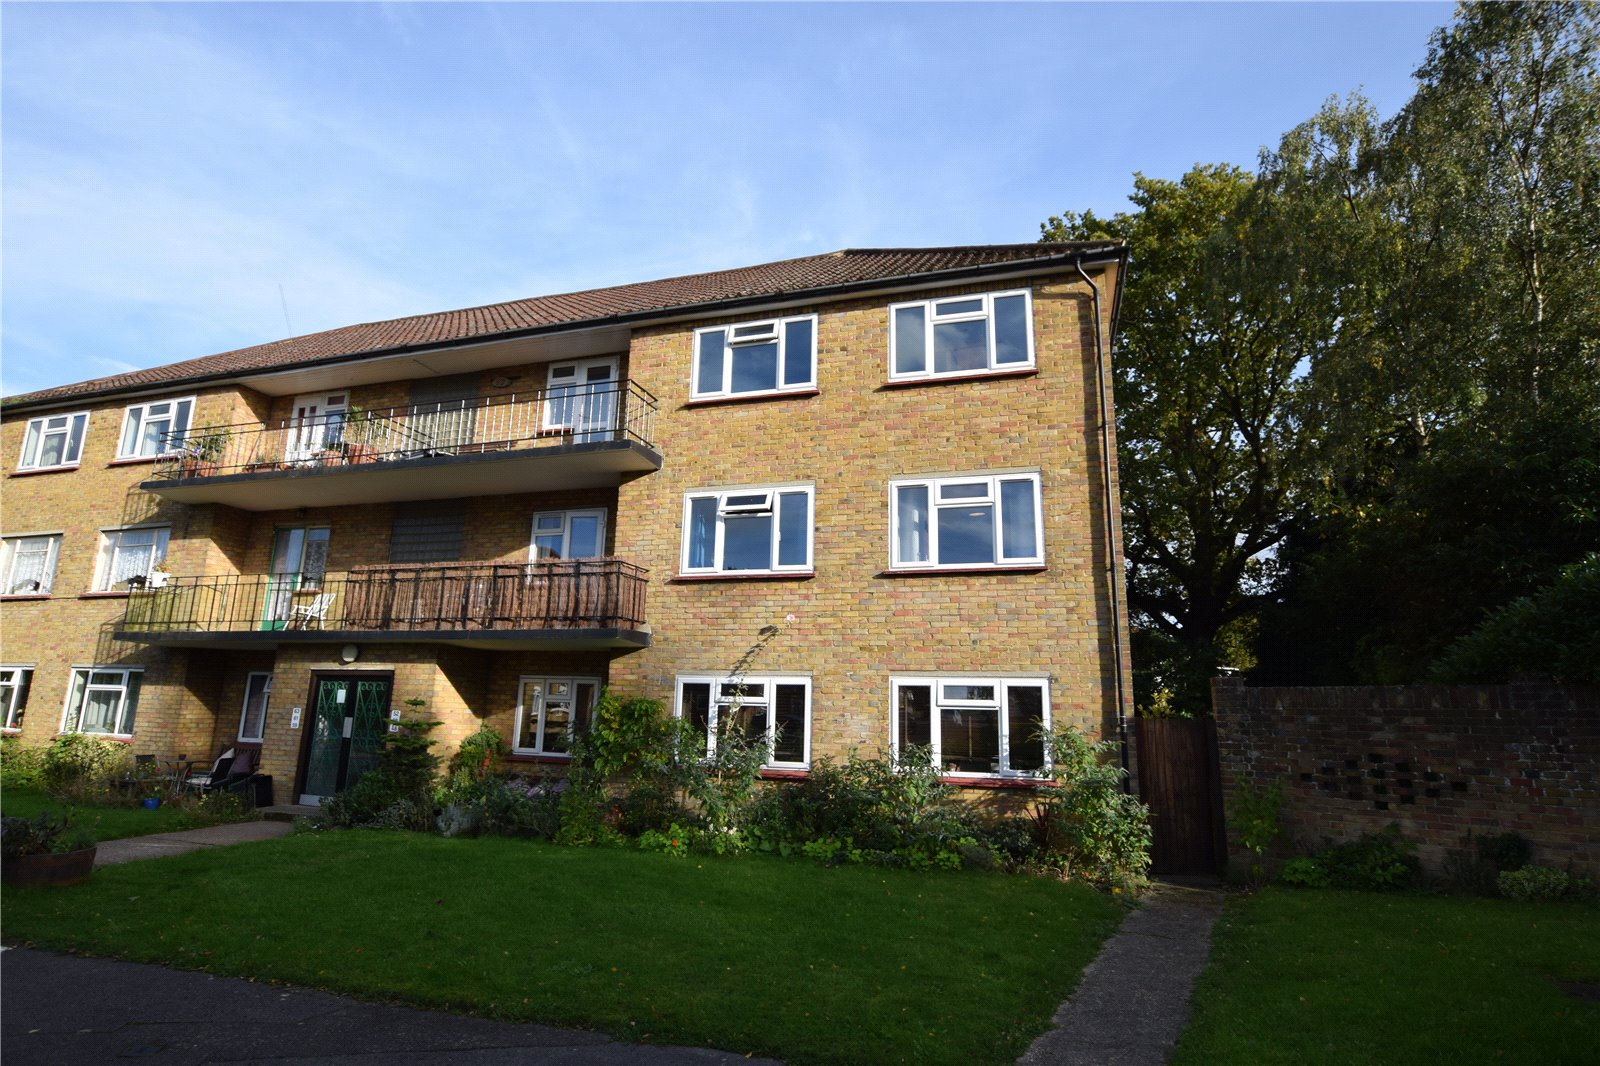 2 Bedrooms Apartment Flat for sale in Courts Road, Earley, Reading, Berkshire, RG6